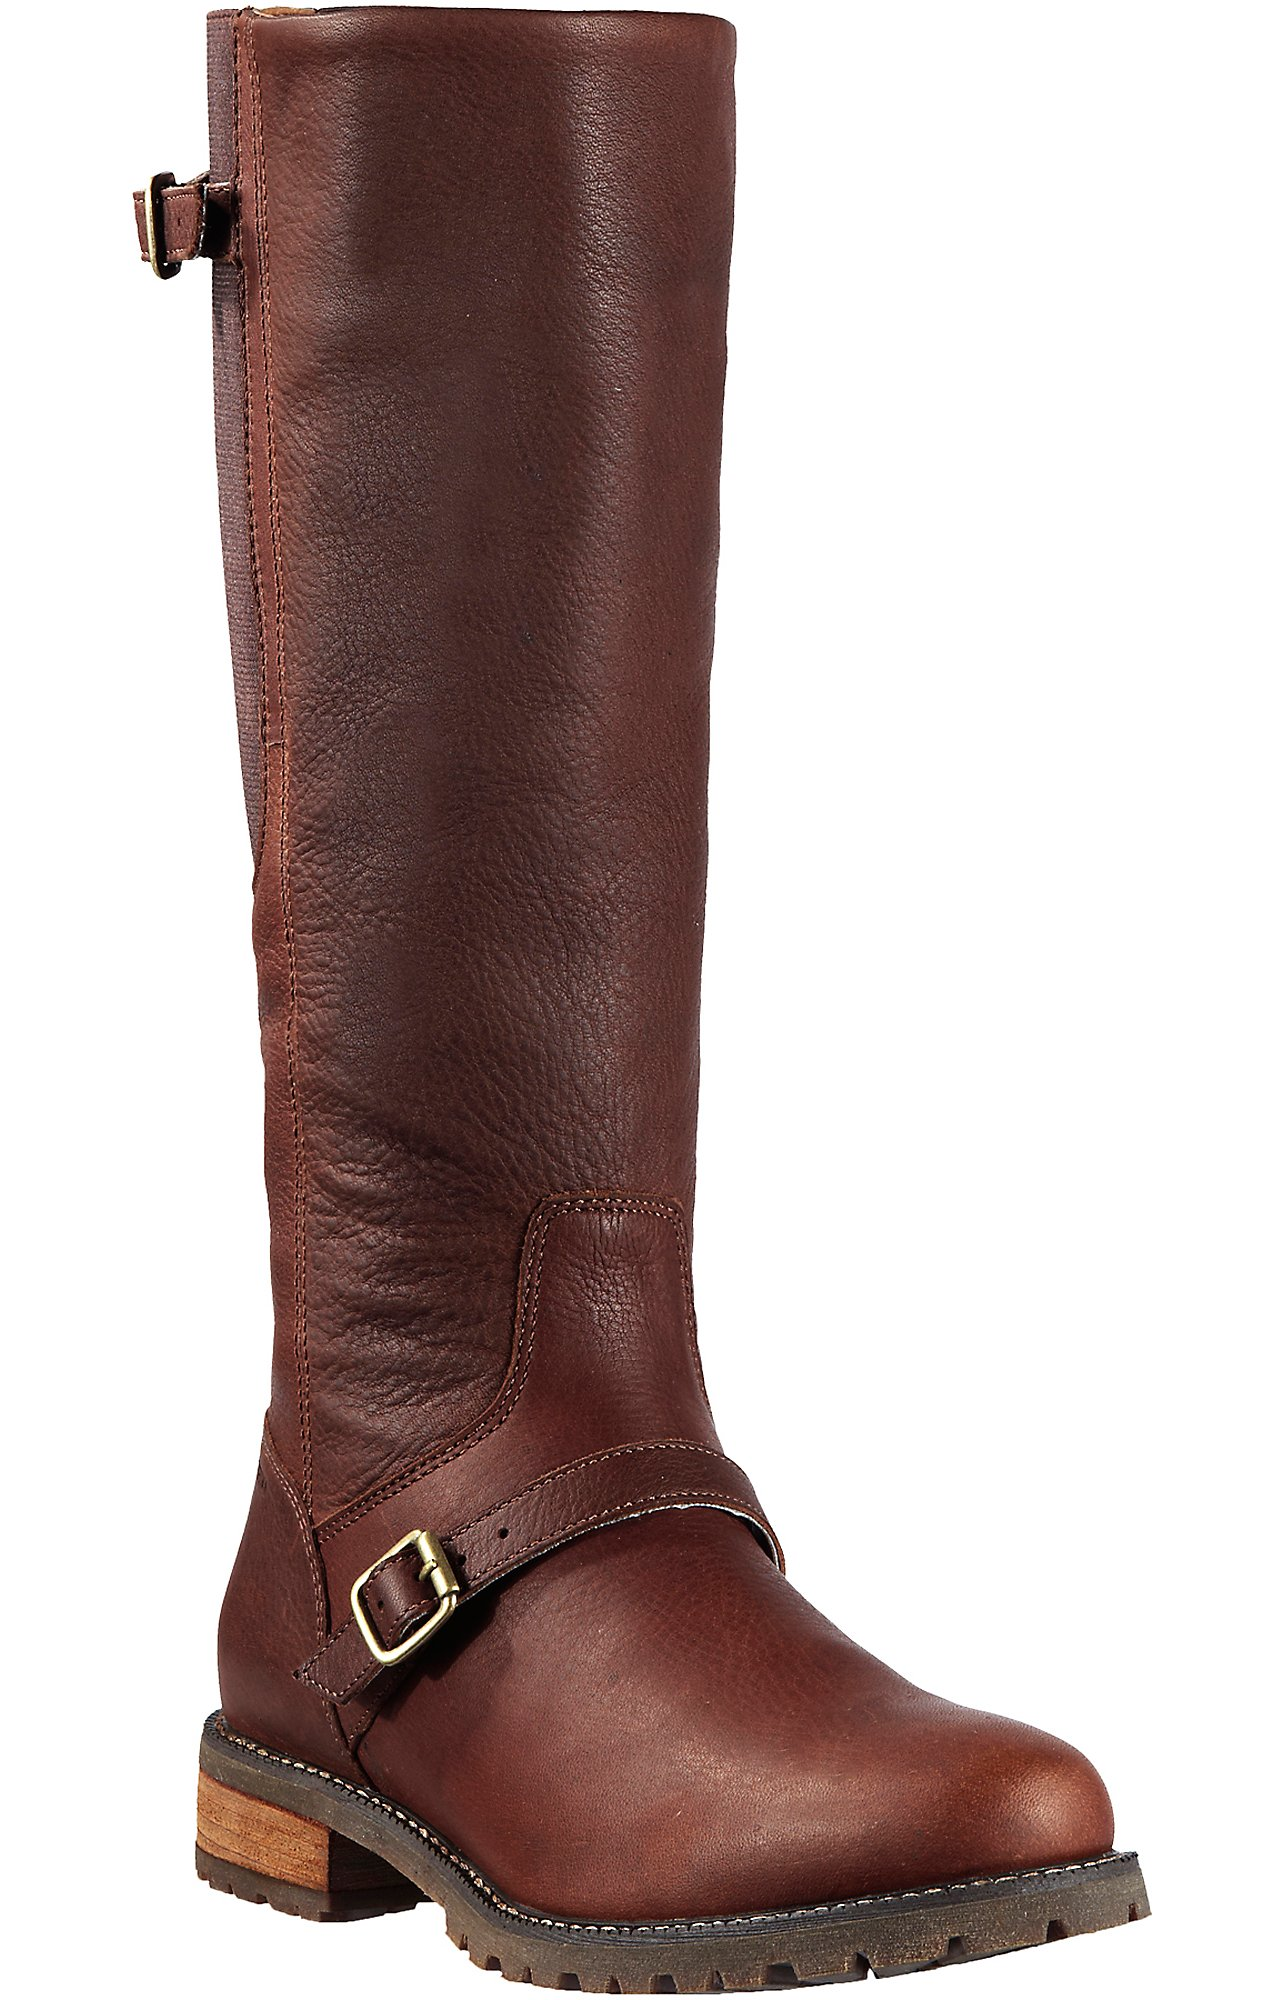 Tall Round Toe Boots